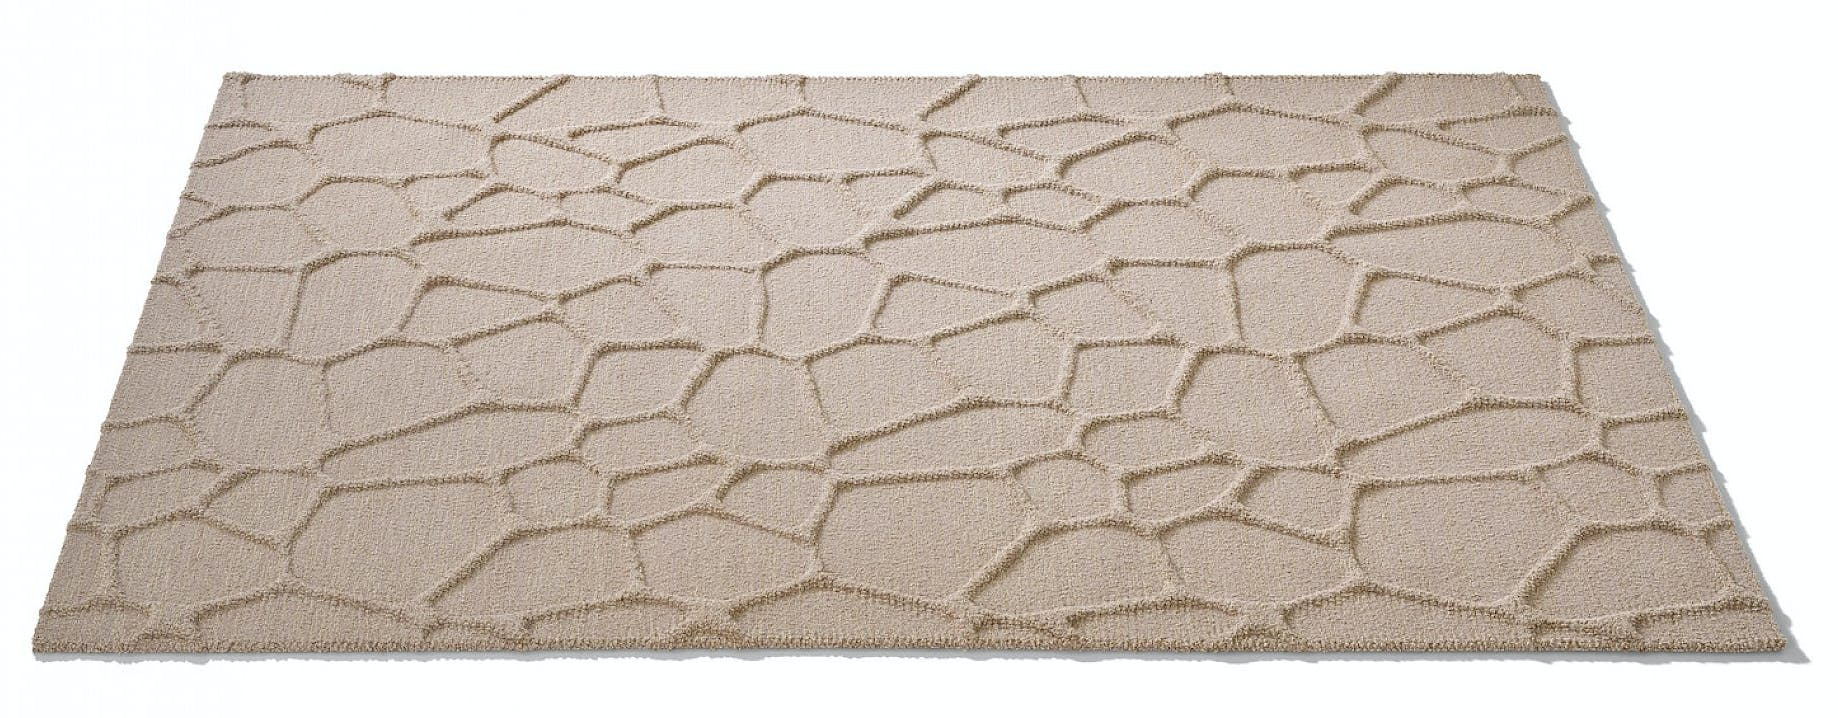 Cellular-Rug-by-Carpet-Sign-now-available-at-Haute-Living